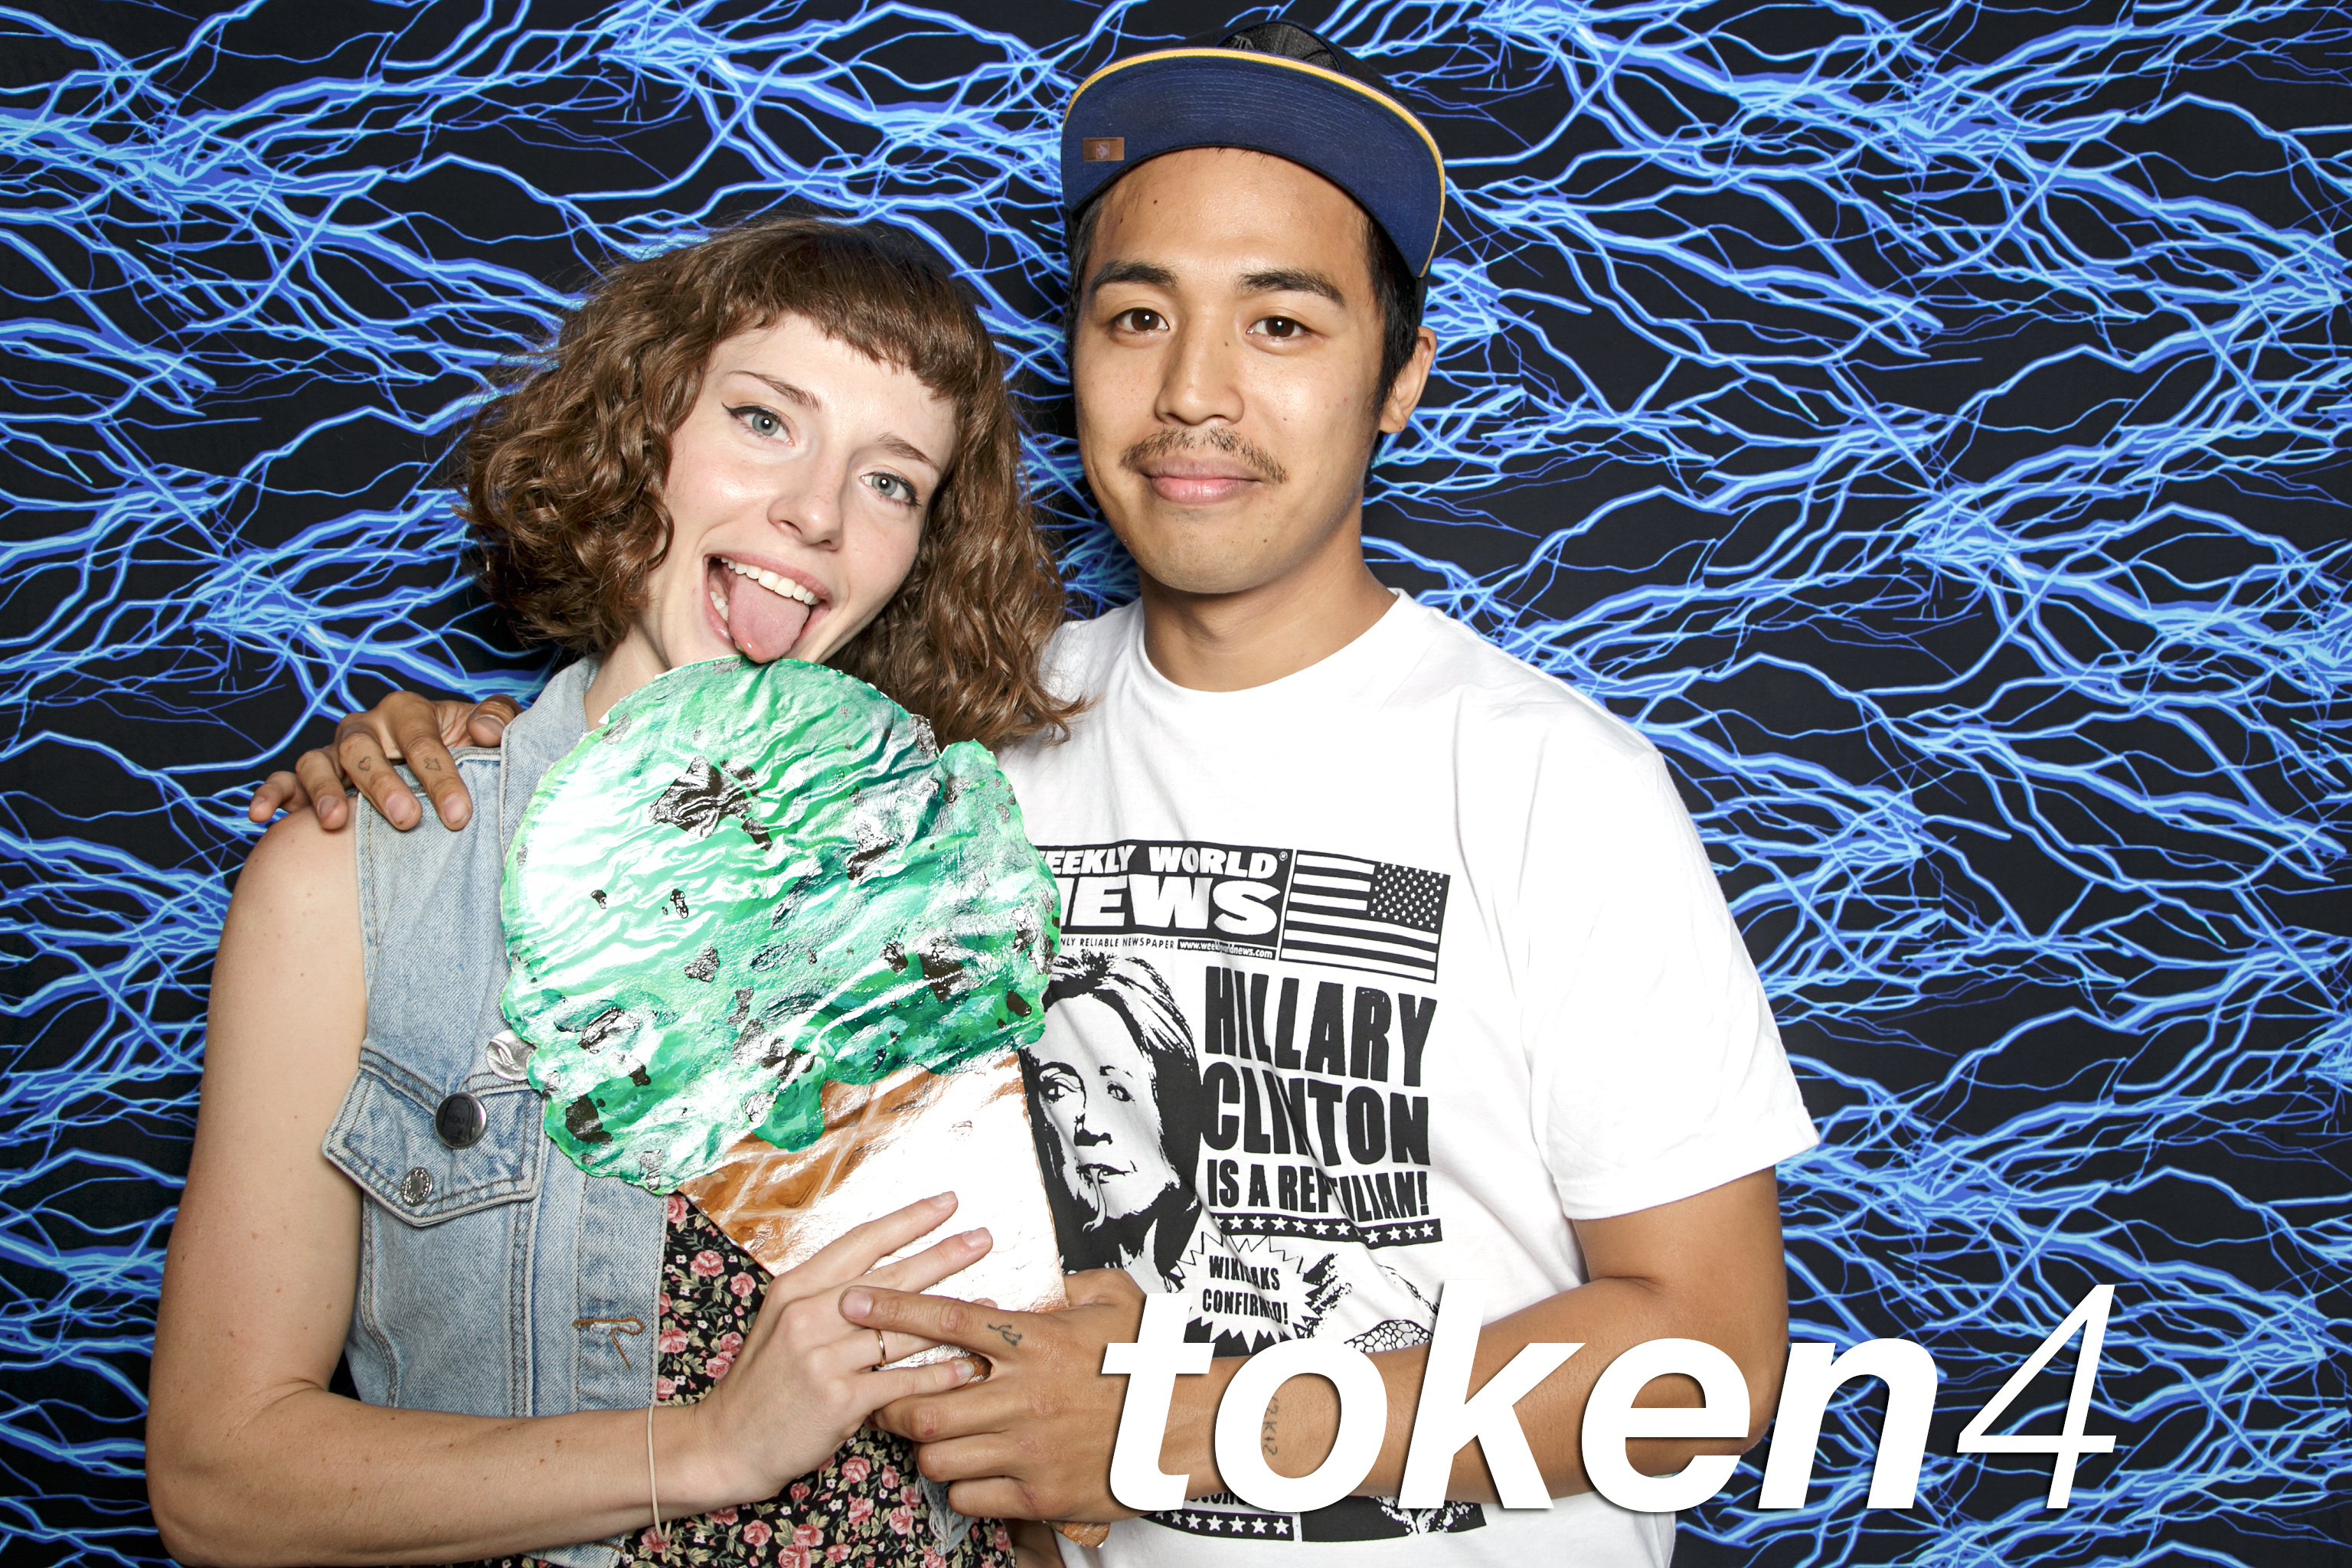 photo booth portraits from token, september 2016